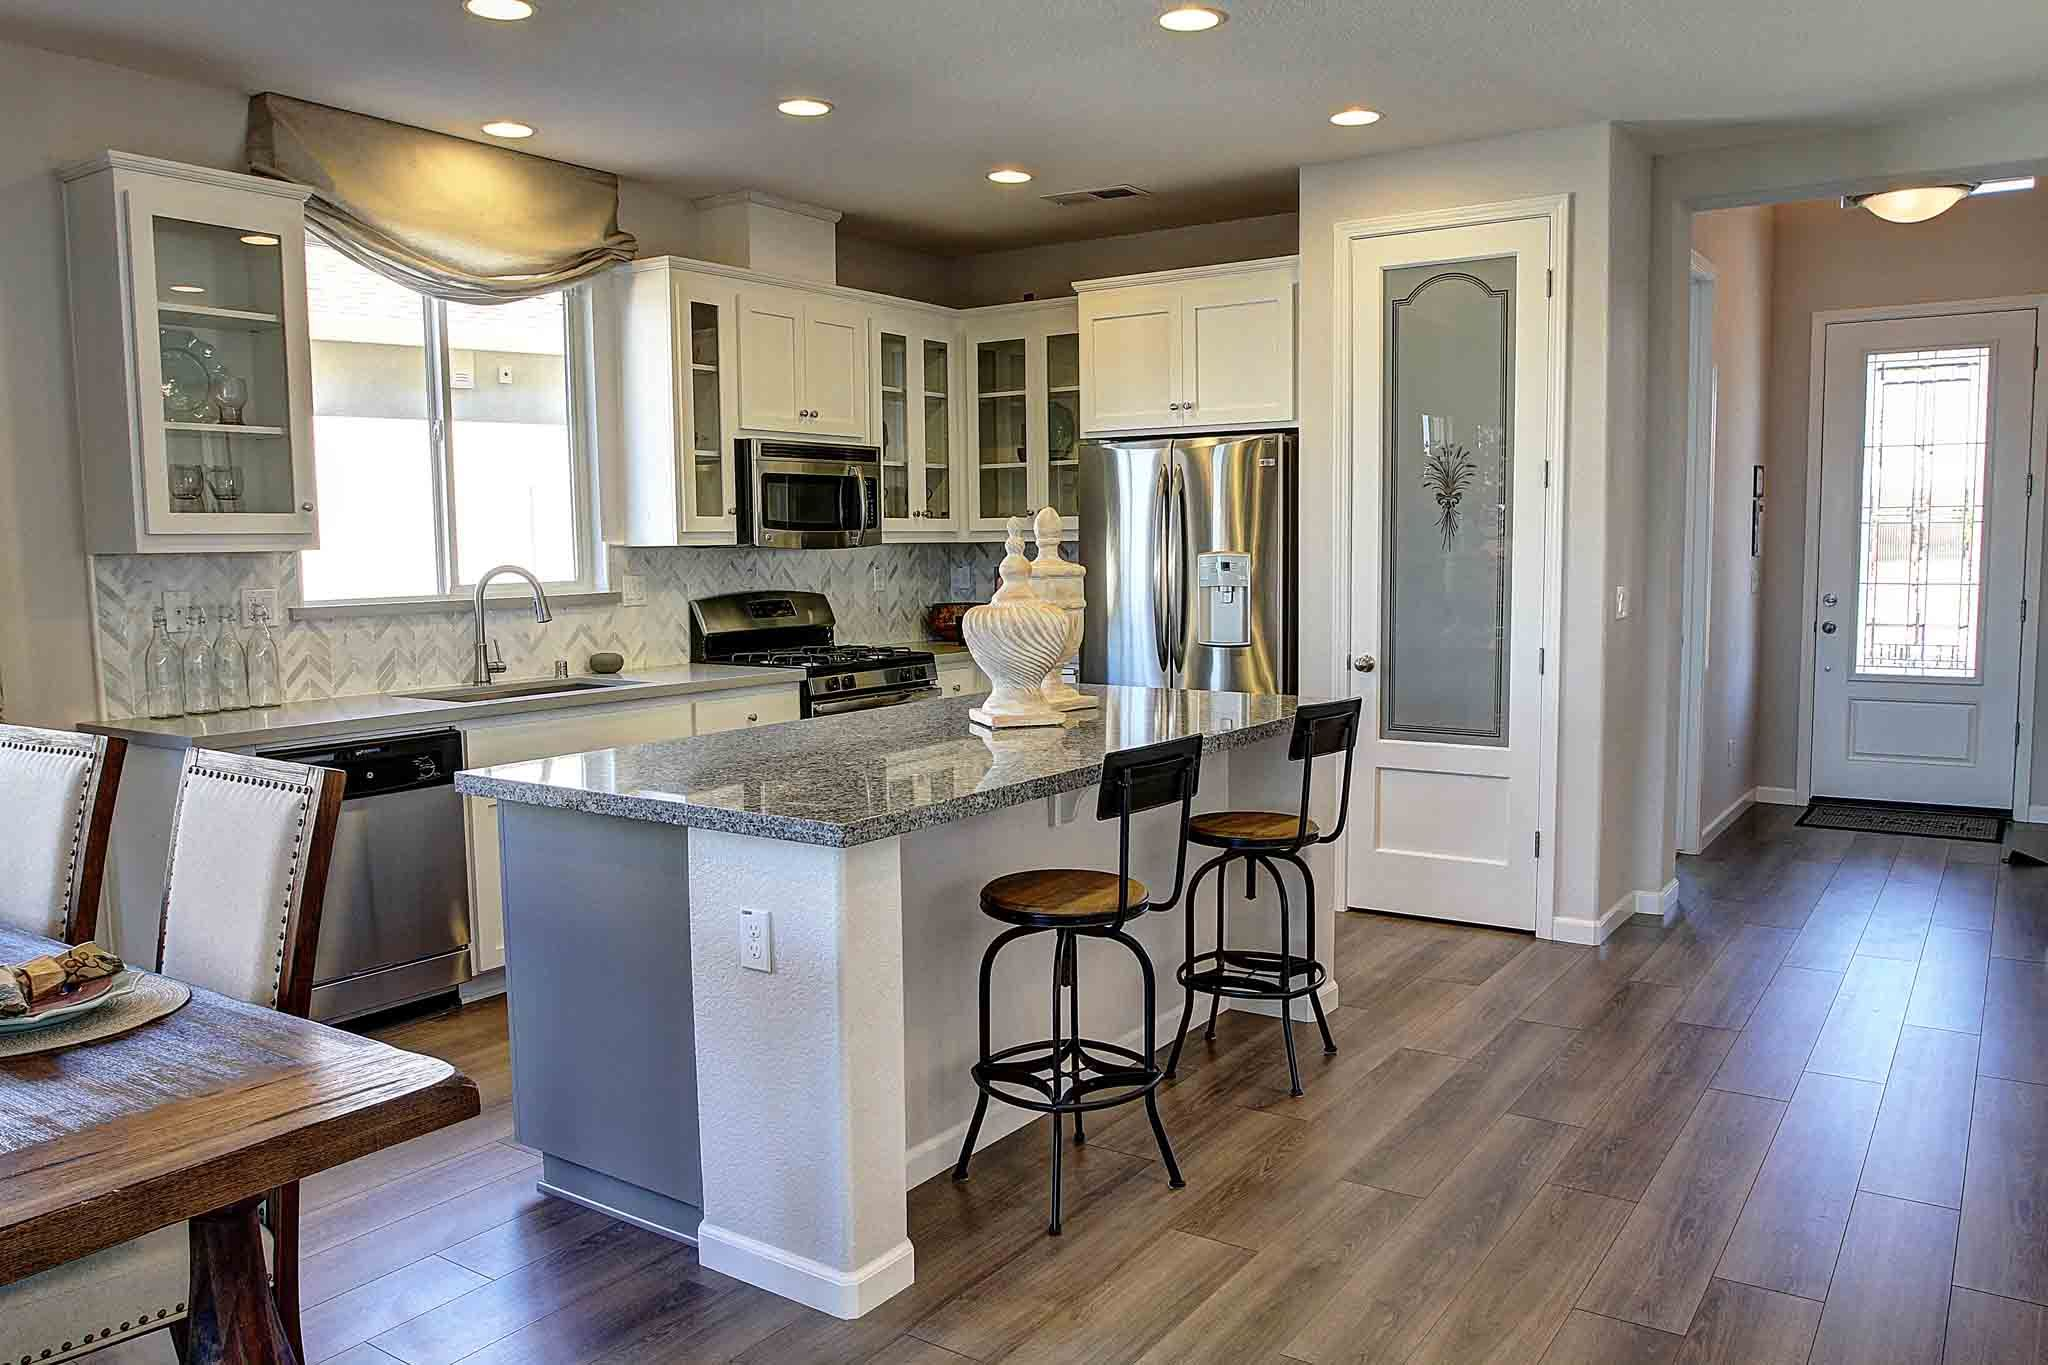 Kitchen featured in the Hudson By Discovery Homes in Chico, CA